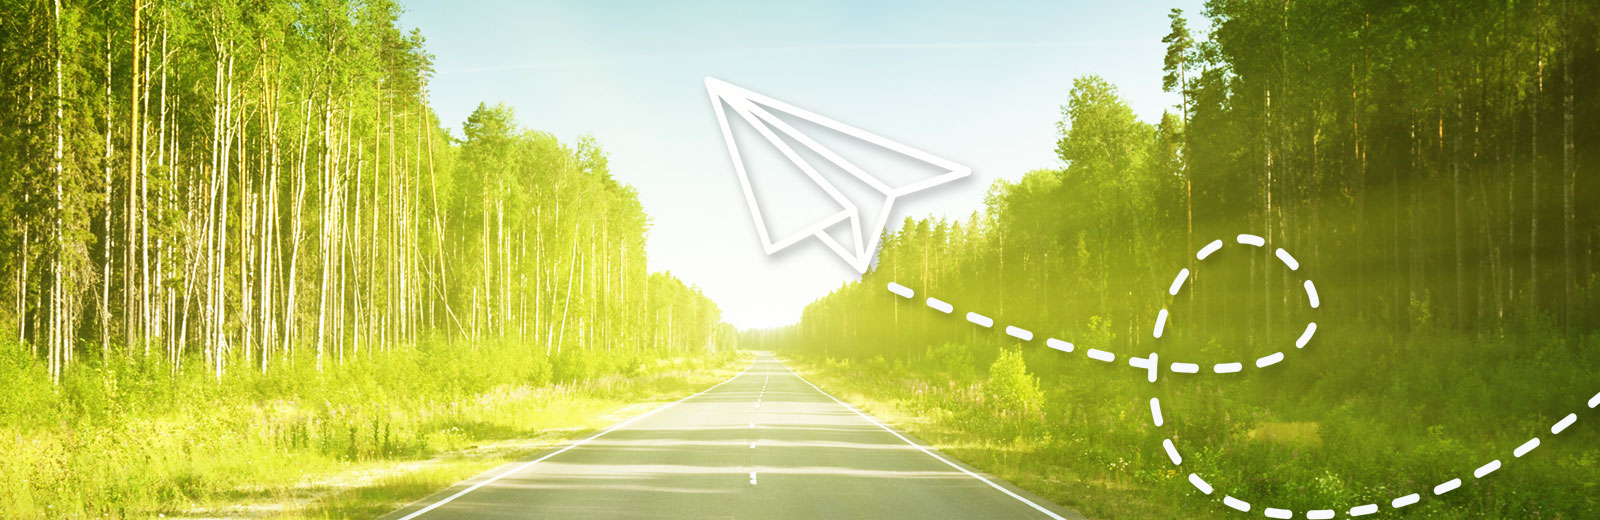 Road with a paper airplane flying across